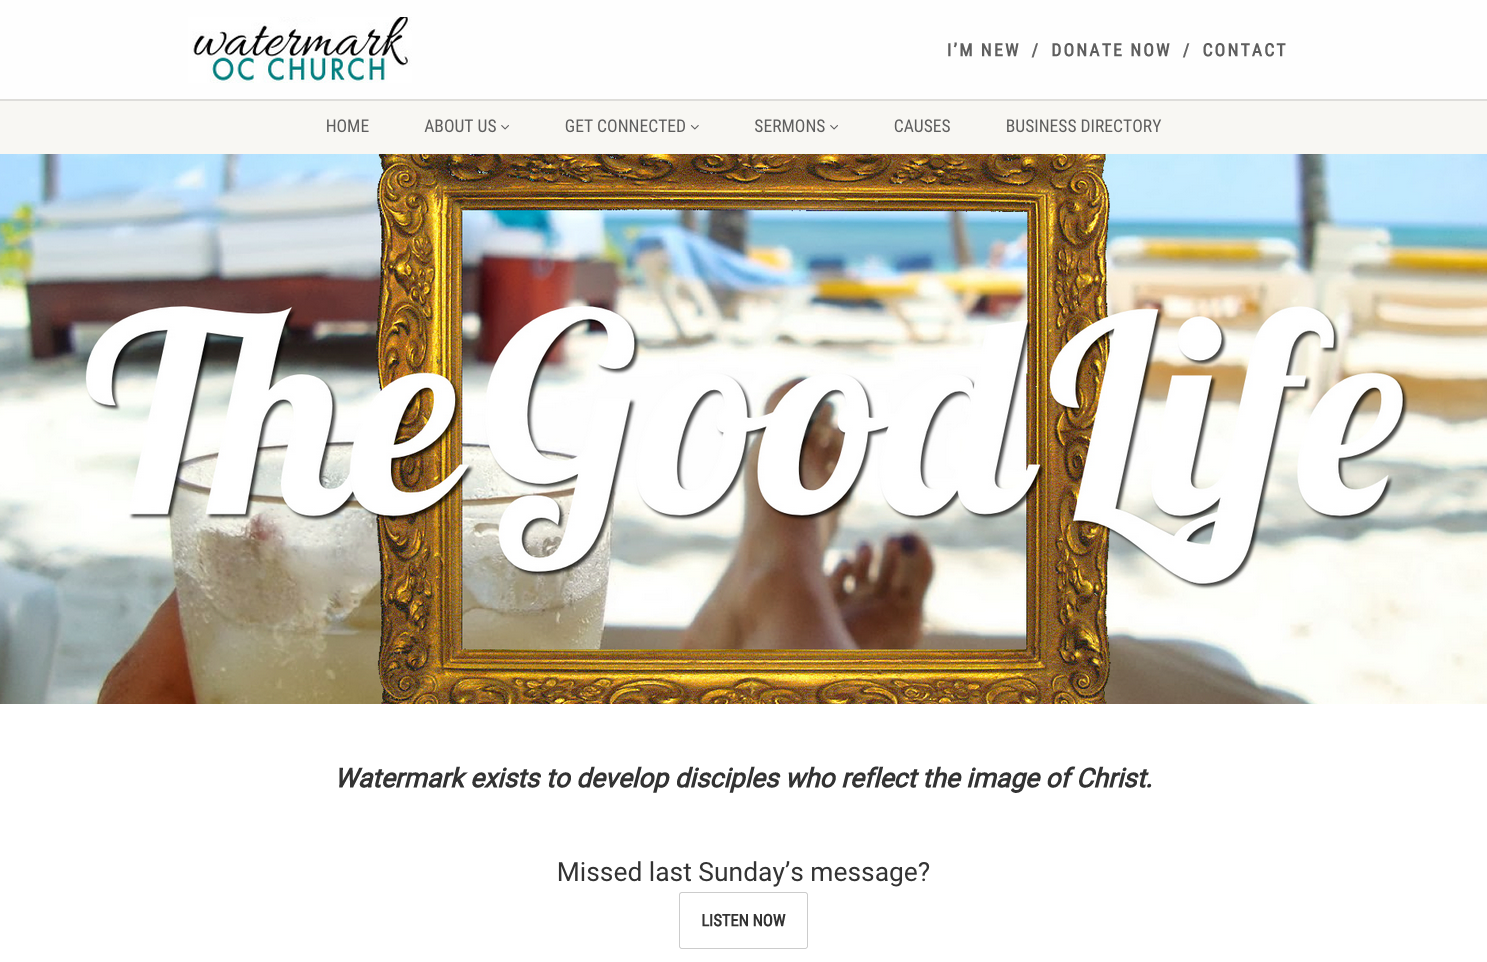 watermark-church-webvisiblegroup-project-watermark-church-orange-county